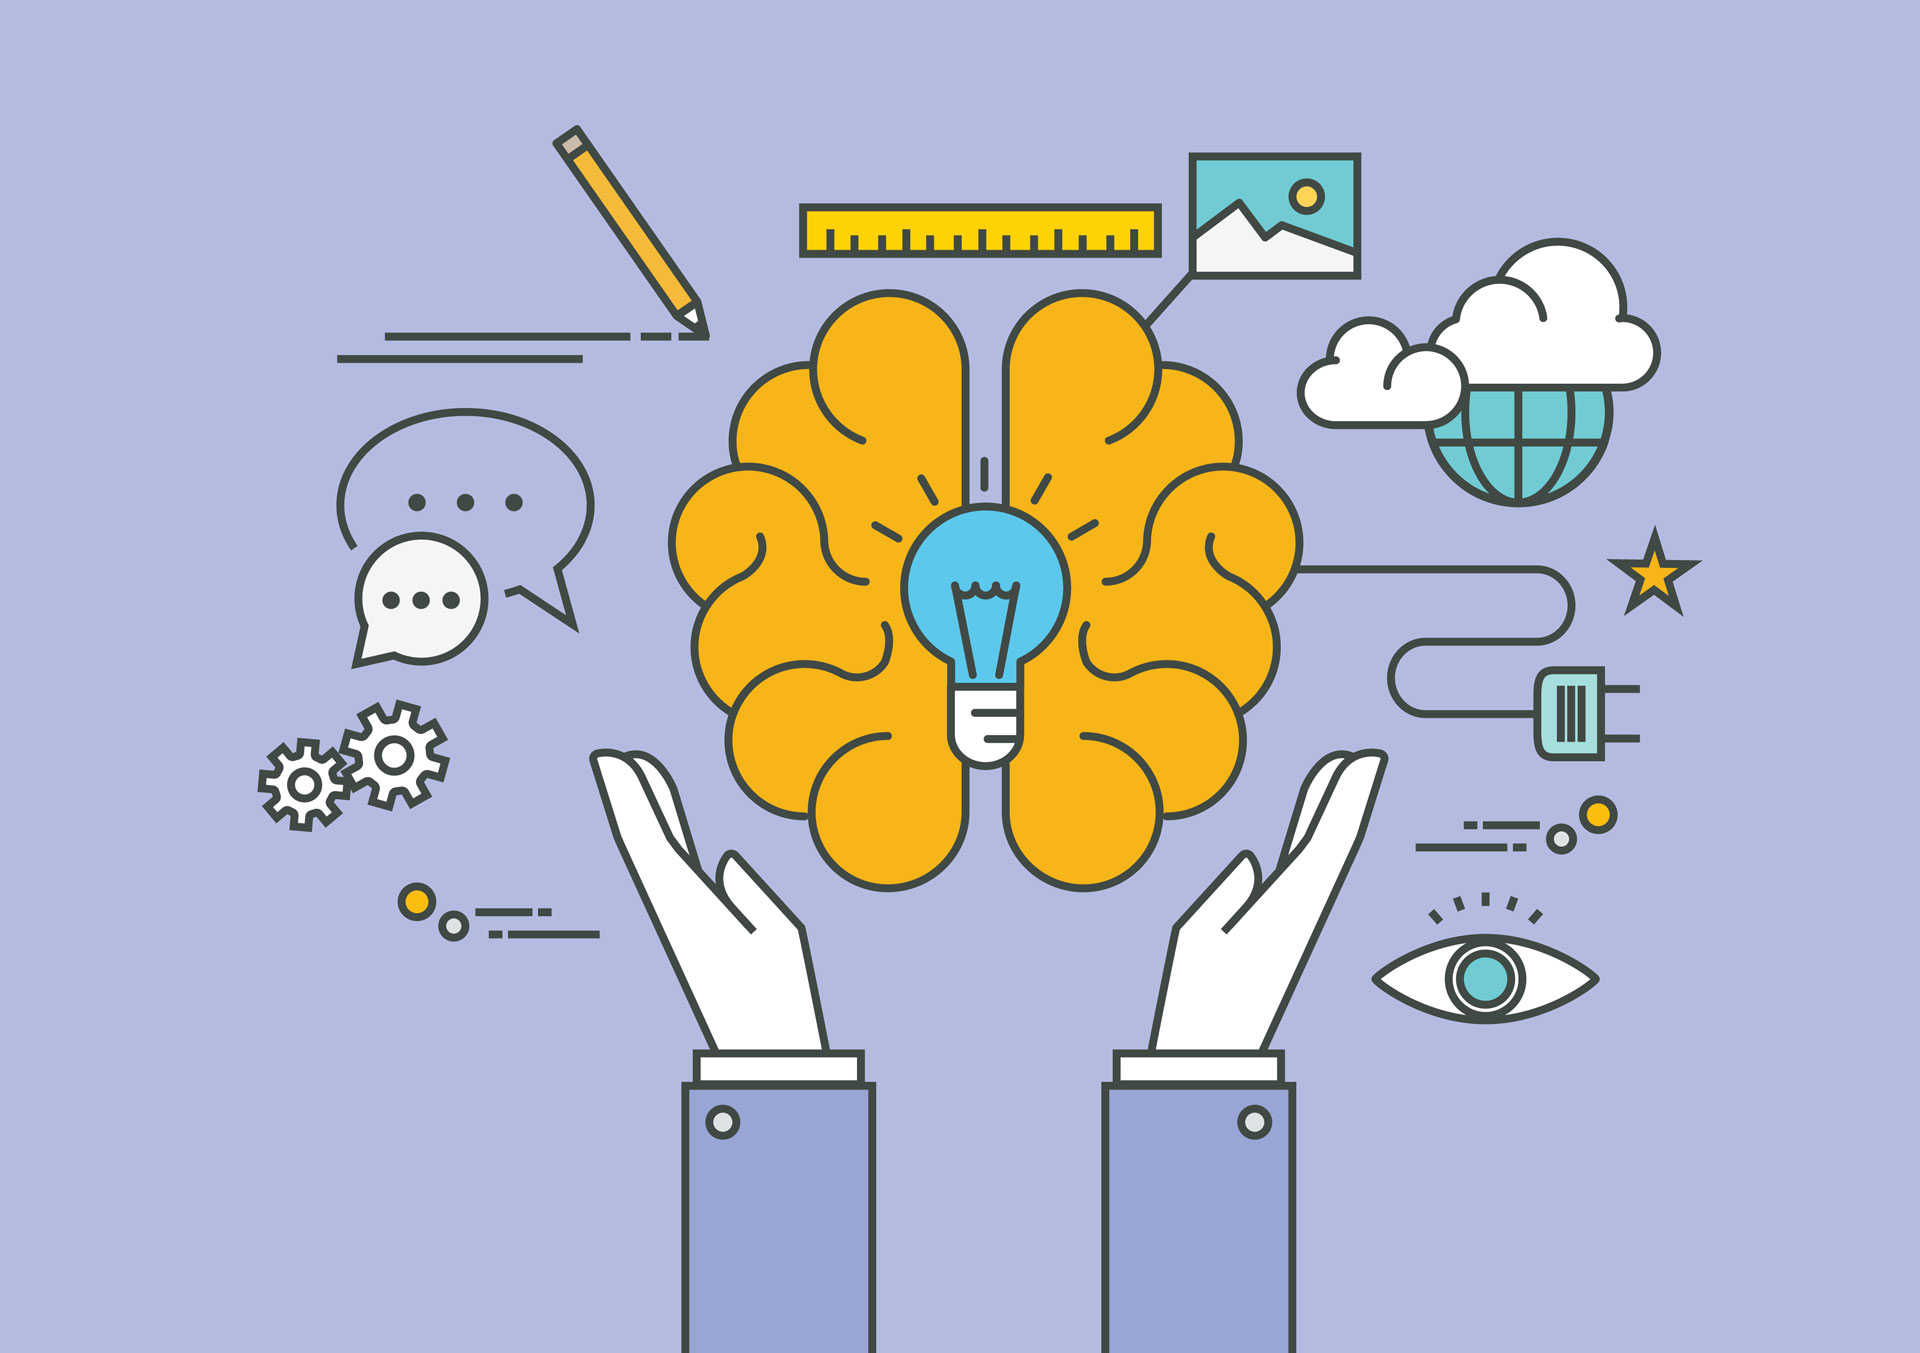 Design thinking for data science: Humans' secret sauce against machines